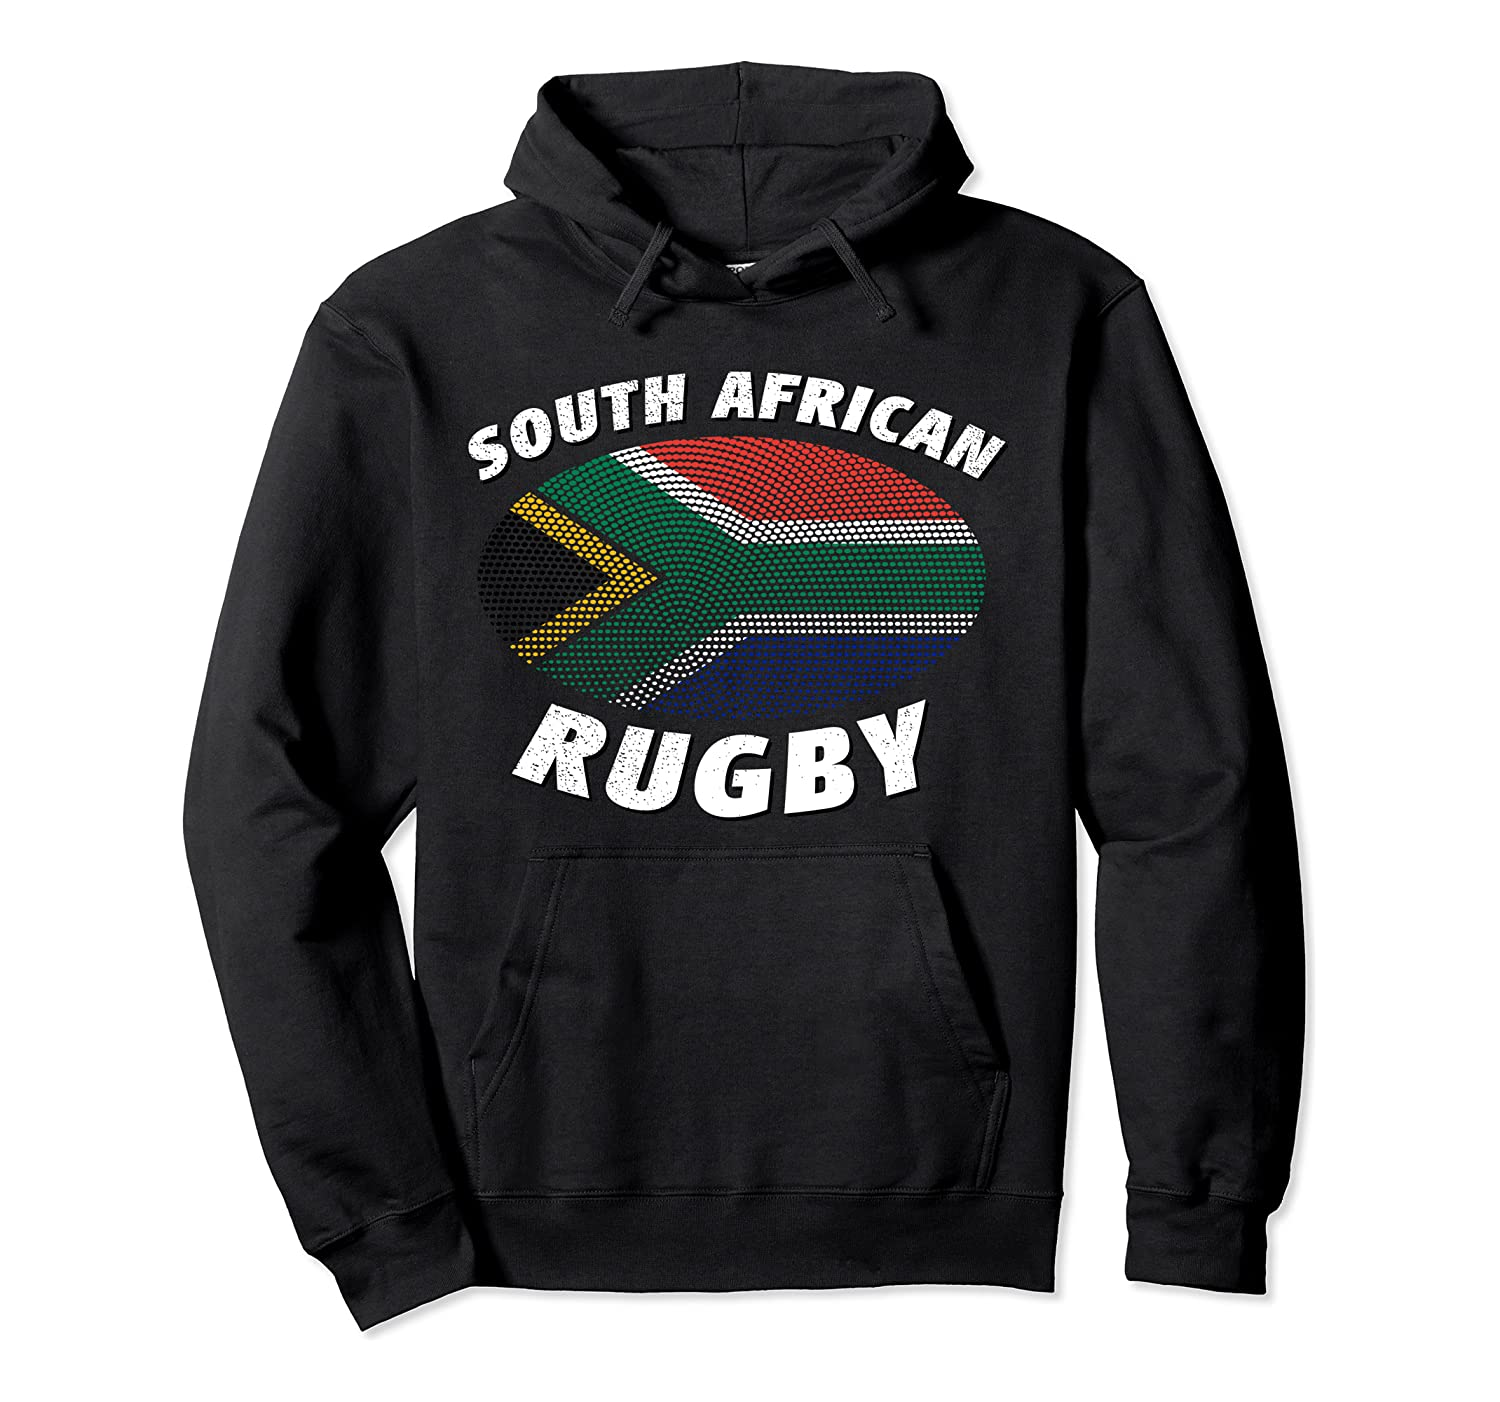 South African Rugby & South Africa Flag Pullover Hoodie